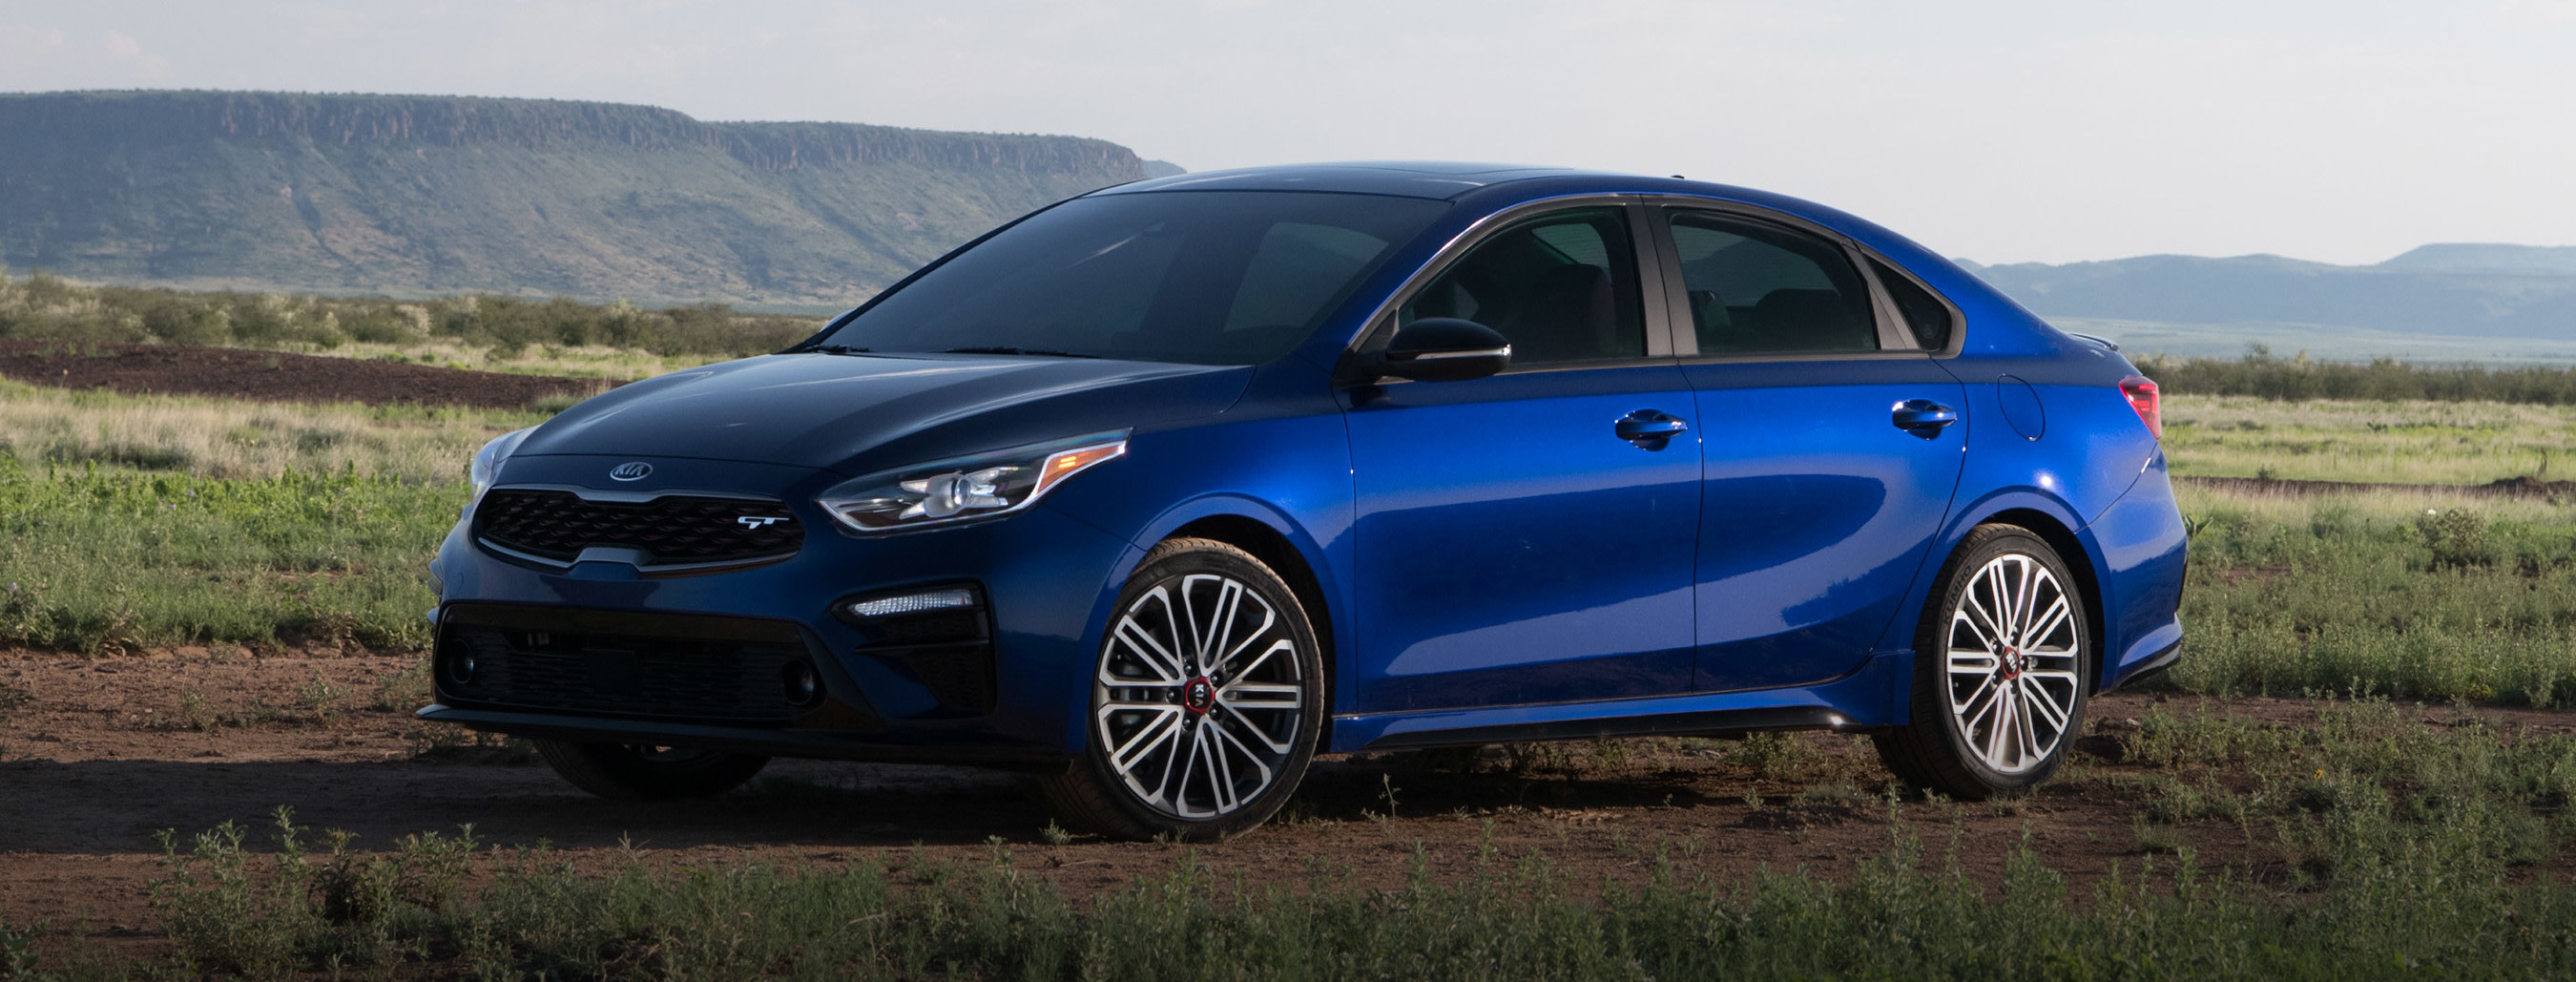 2020 Kia Forte for Sale near Austin, TX